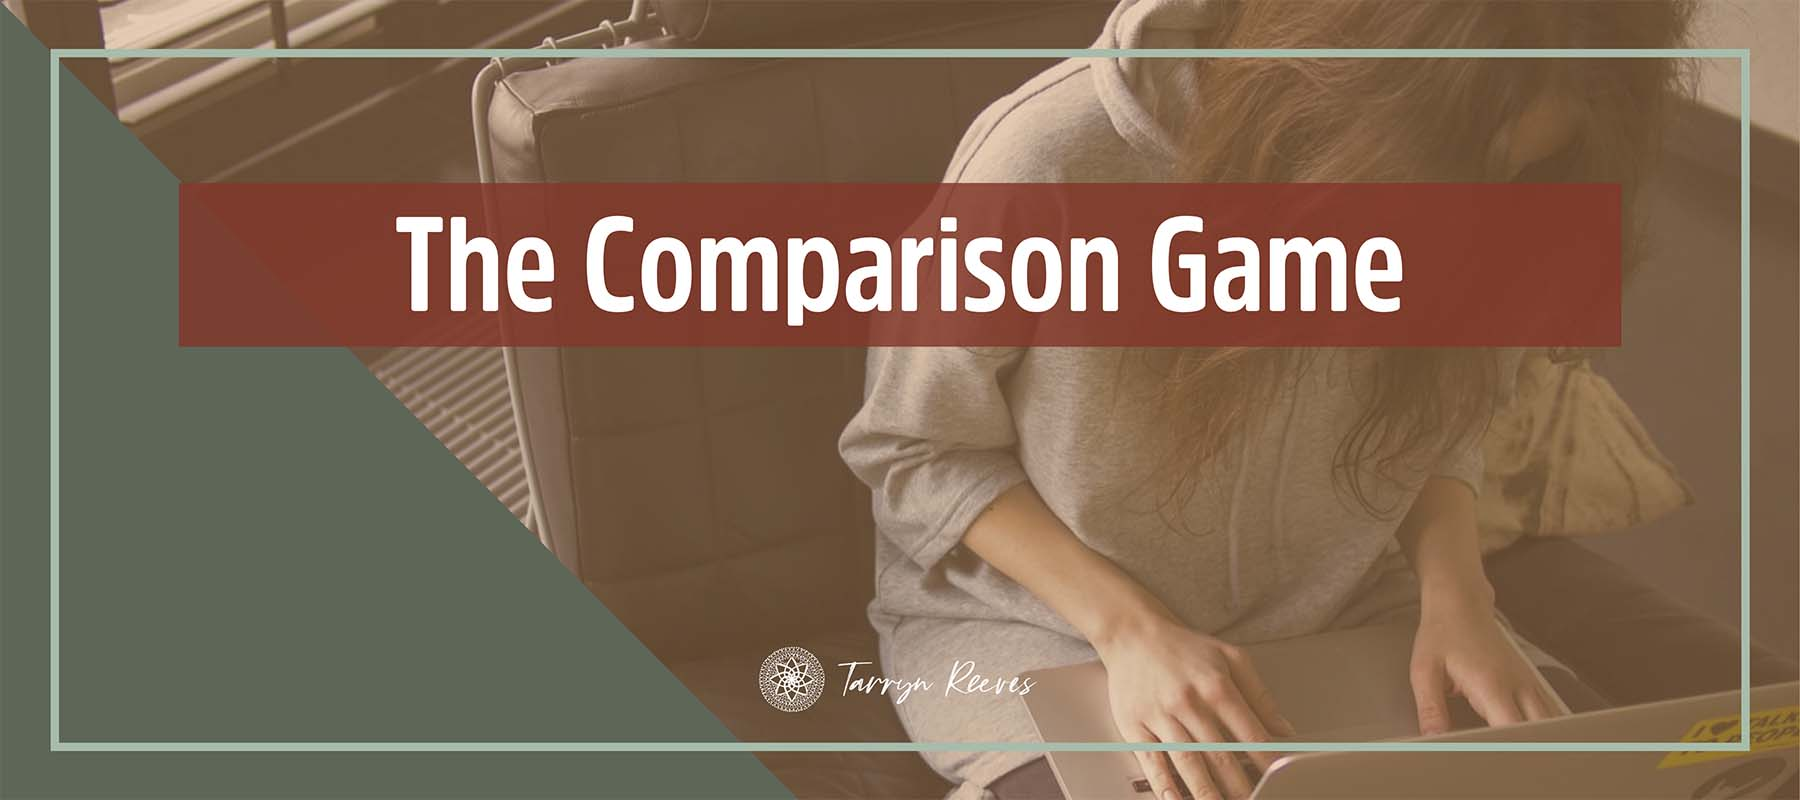 You are currently viewing The Comparison Game